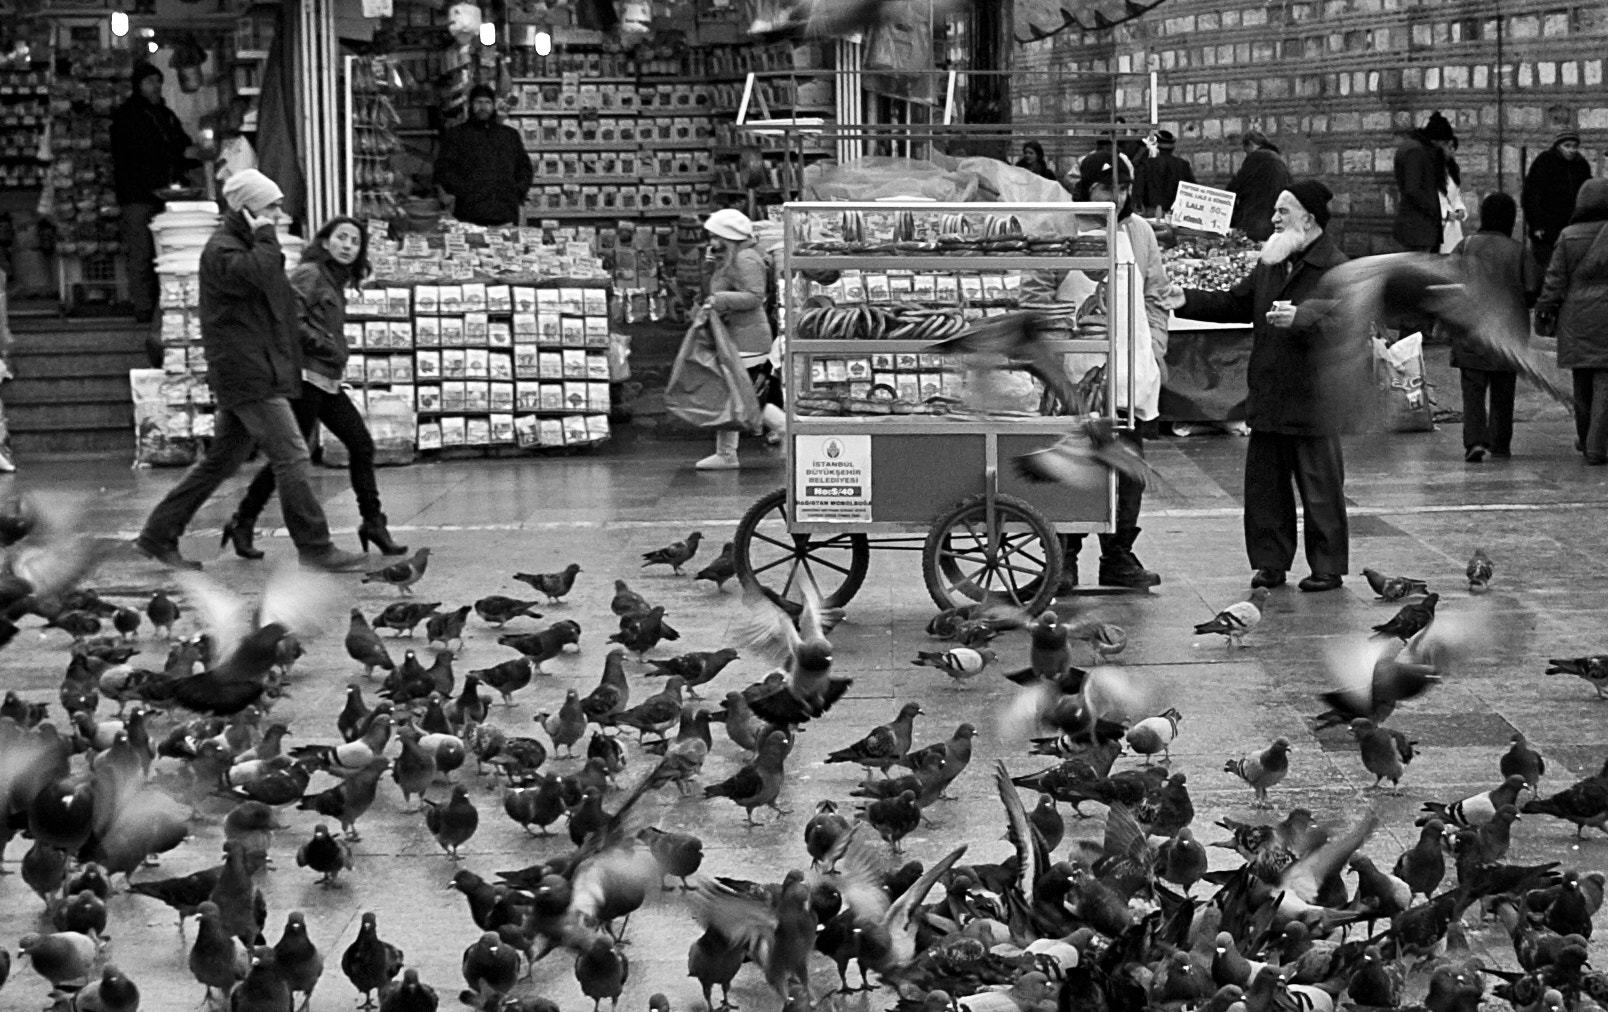 Photograph Hope is the poor man's bread by Vuqar Sevdimali on 500px